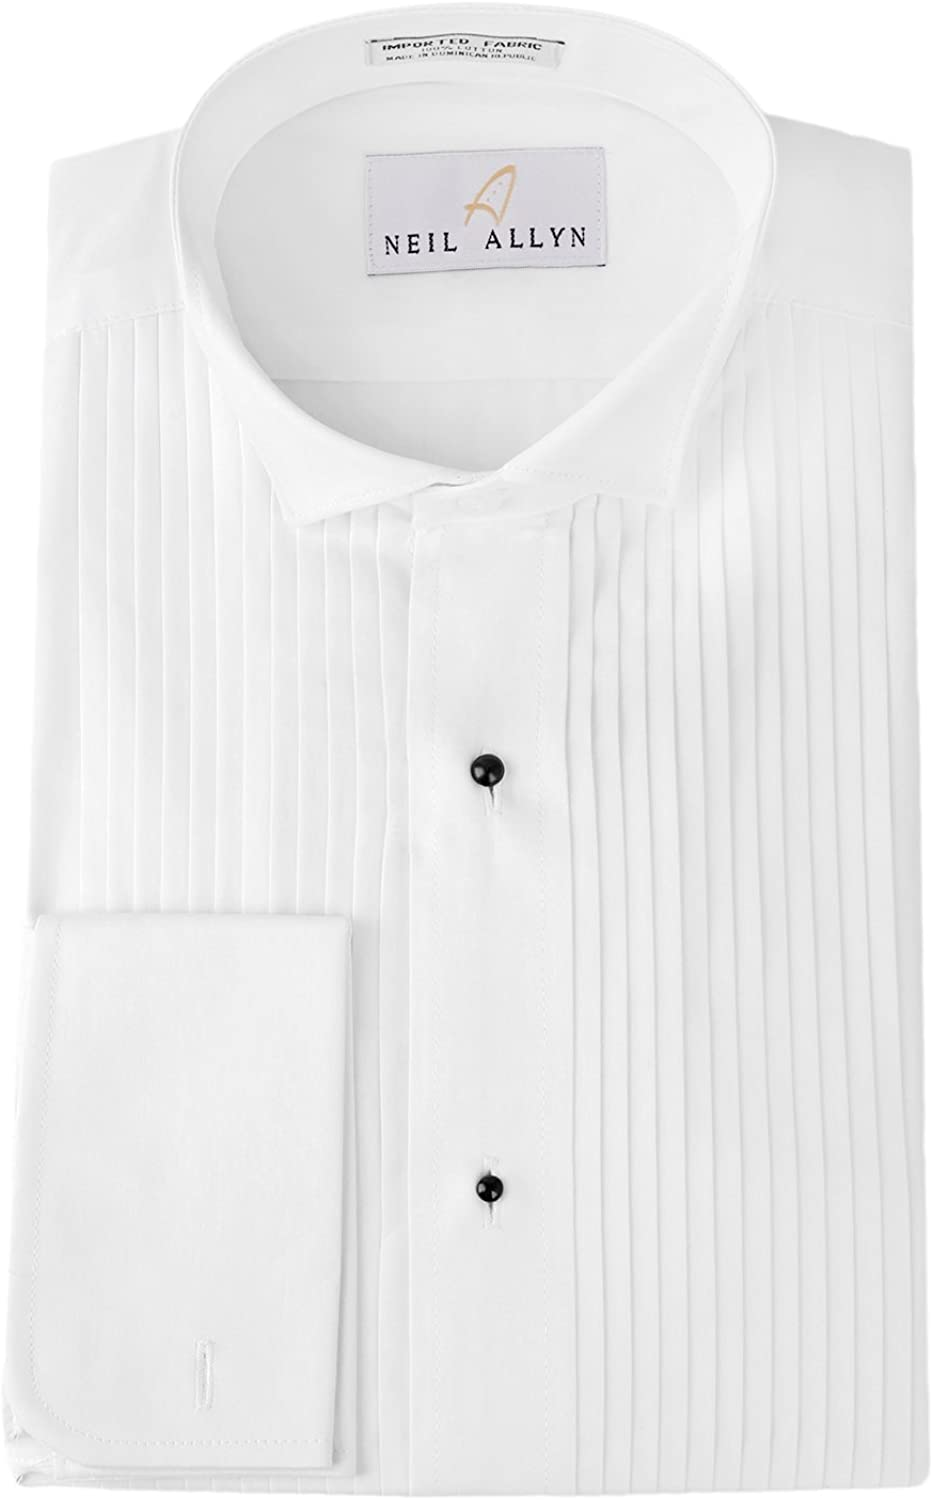 Neil Allyn Tuxedo Shirt 100% Cotton Wing Collar with French Cuffs